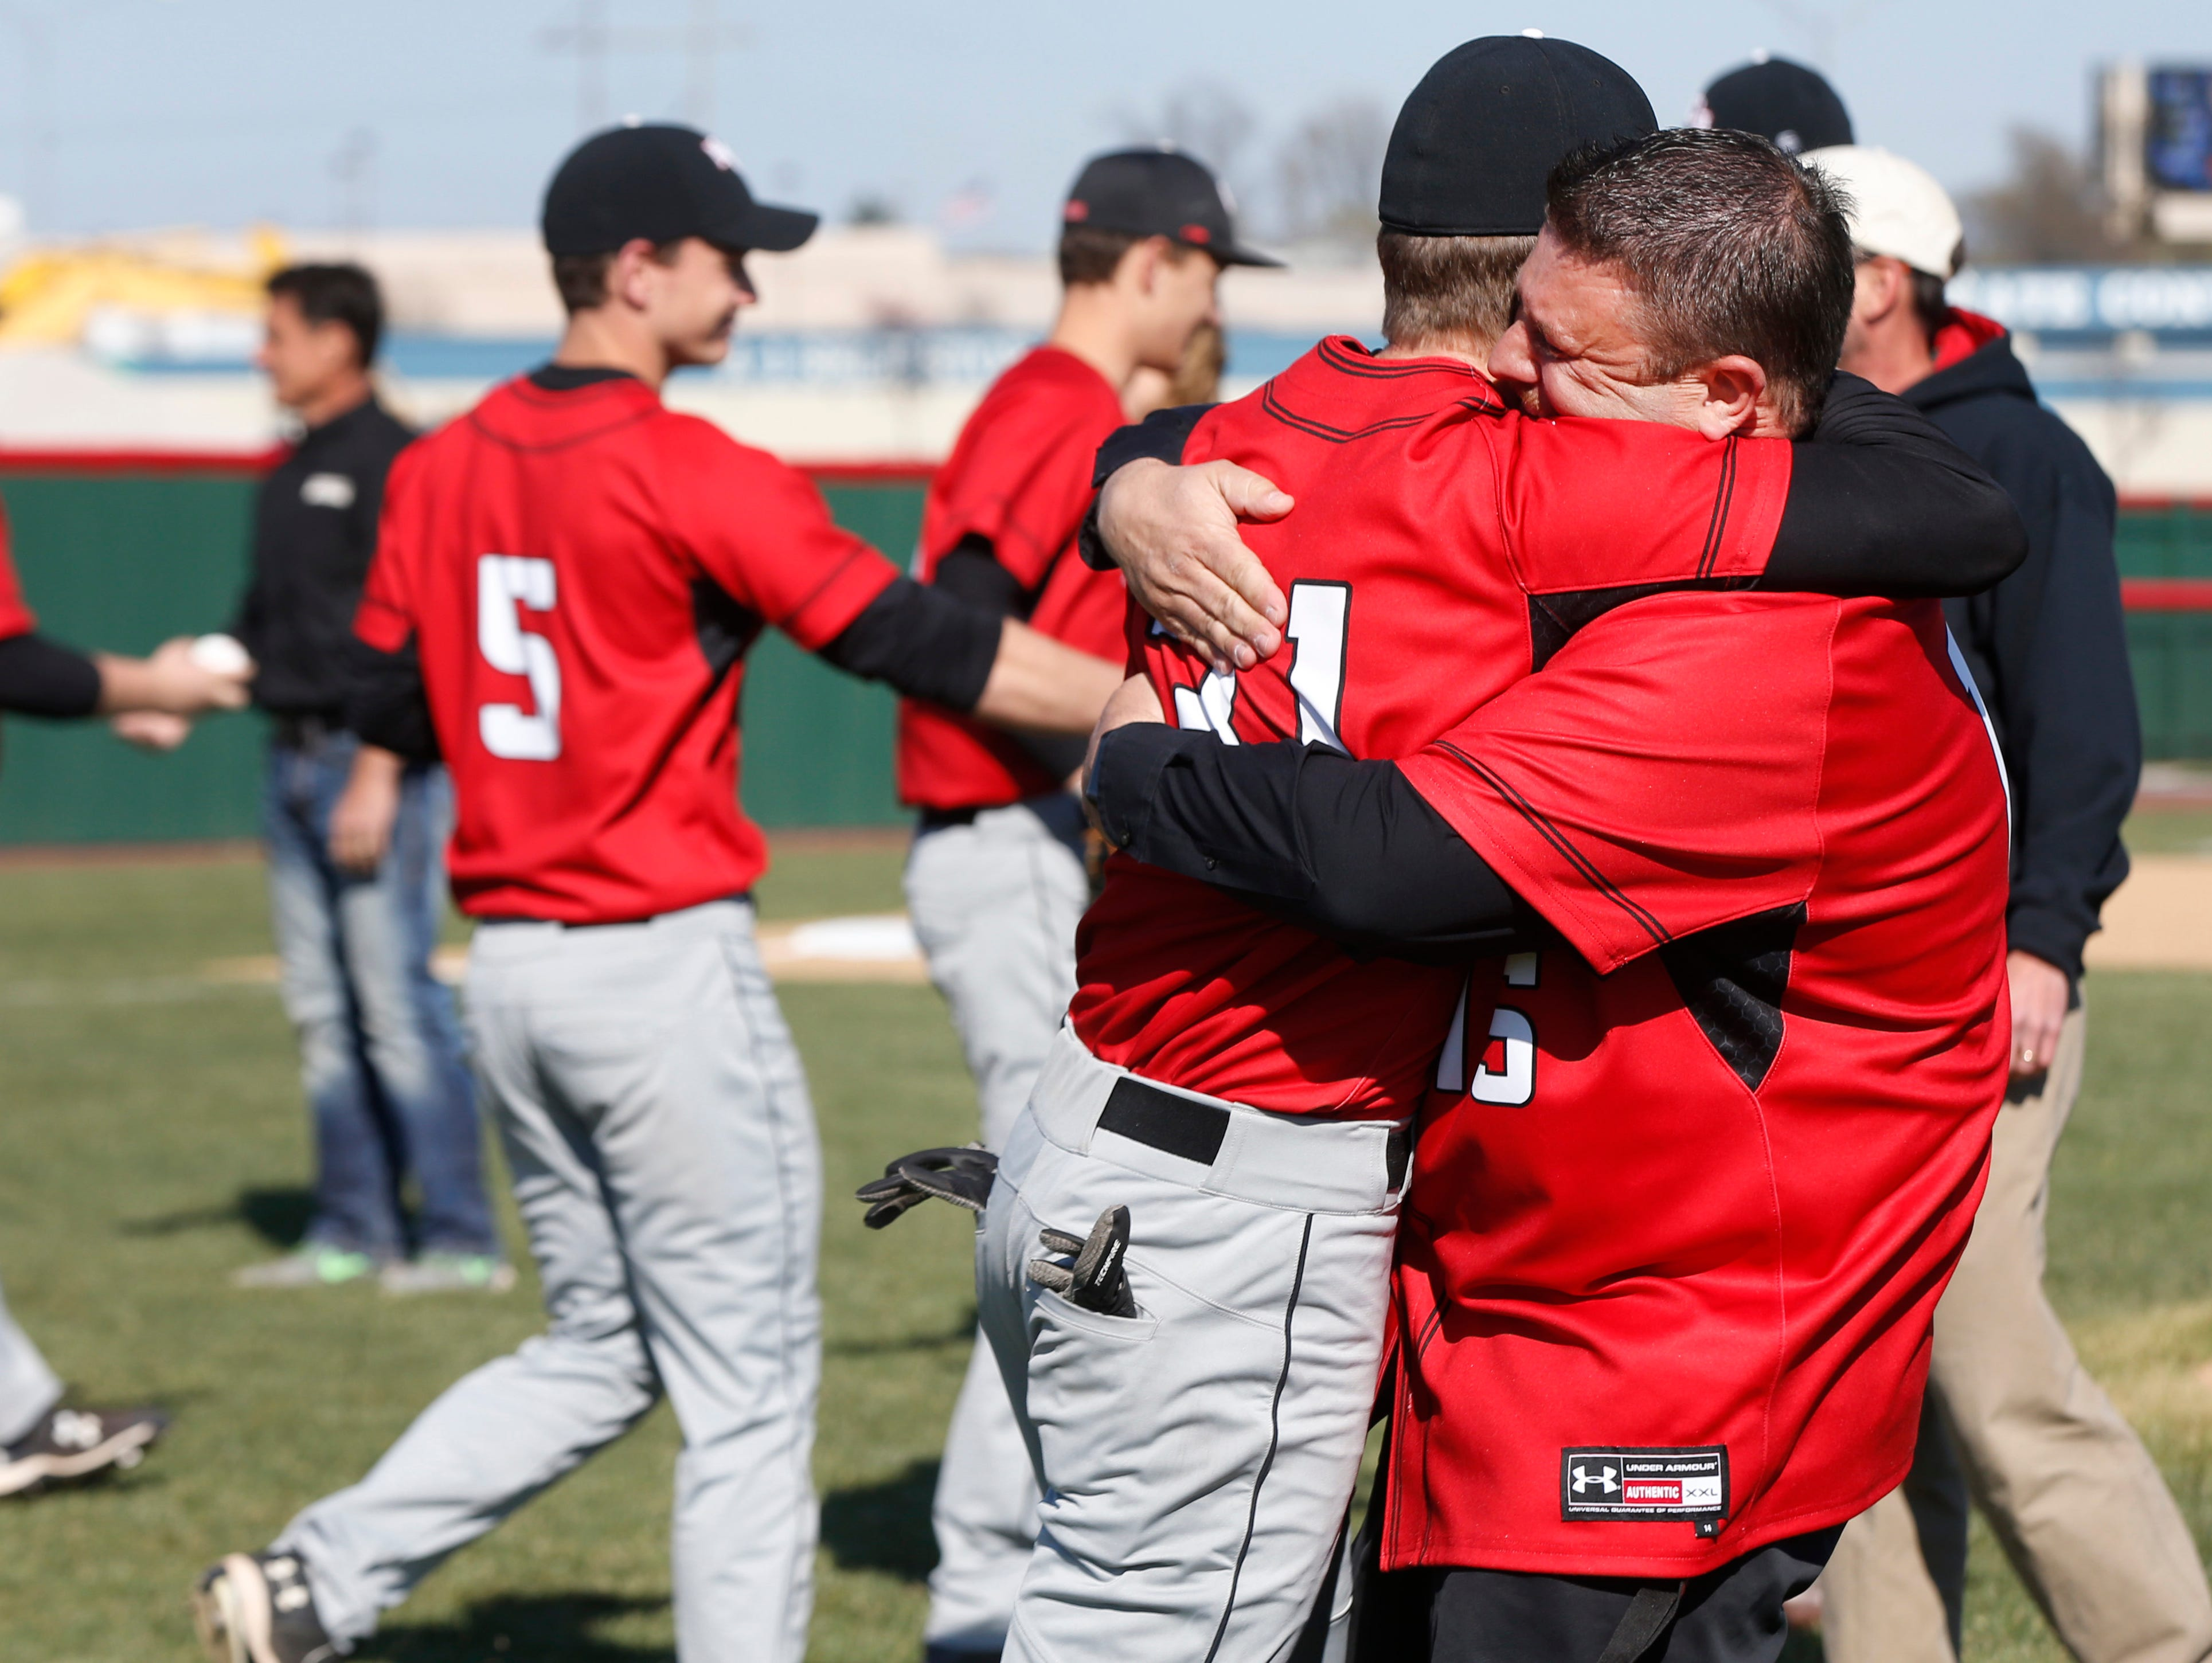 Matt Searson hugs his son Matthew Searson after he threw out the first pitch before the New Covenant Academy baseball team played their first game at Federal Protection Field on Monday, Mar. 21, 2016.